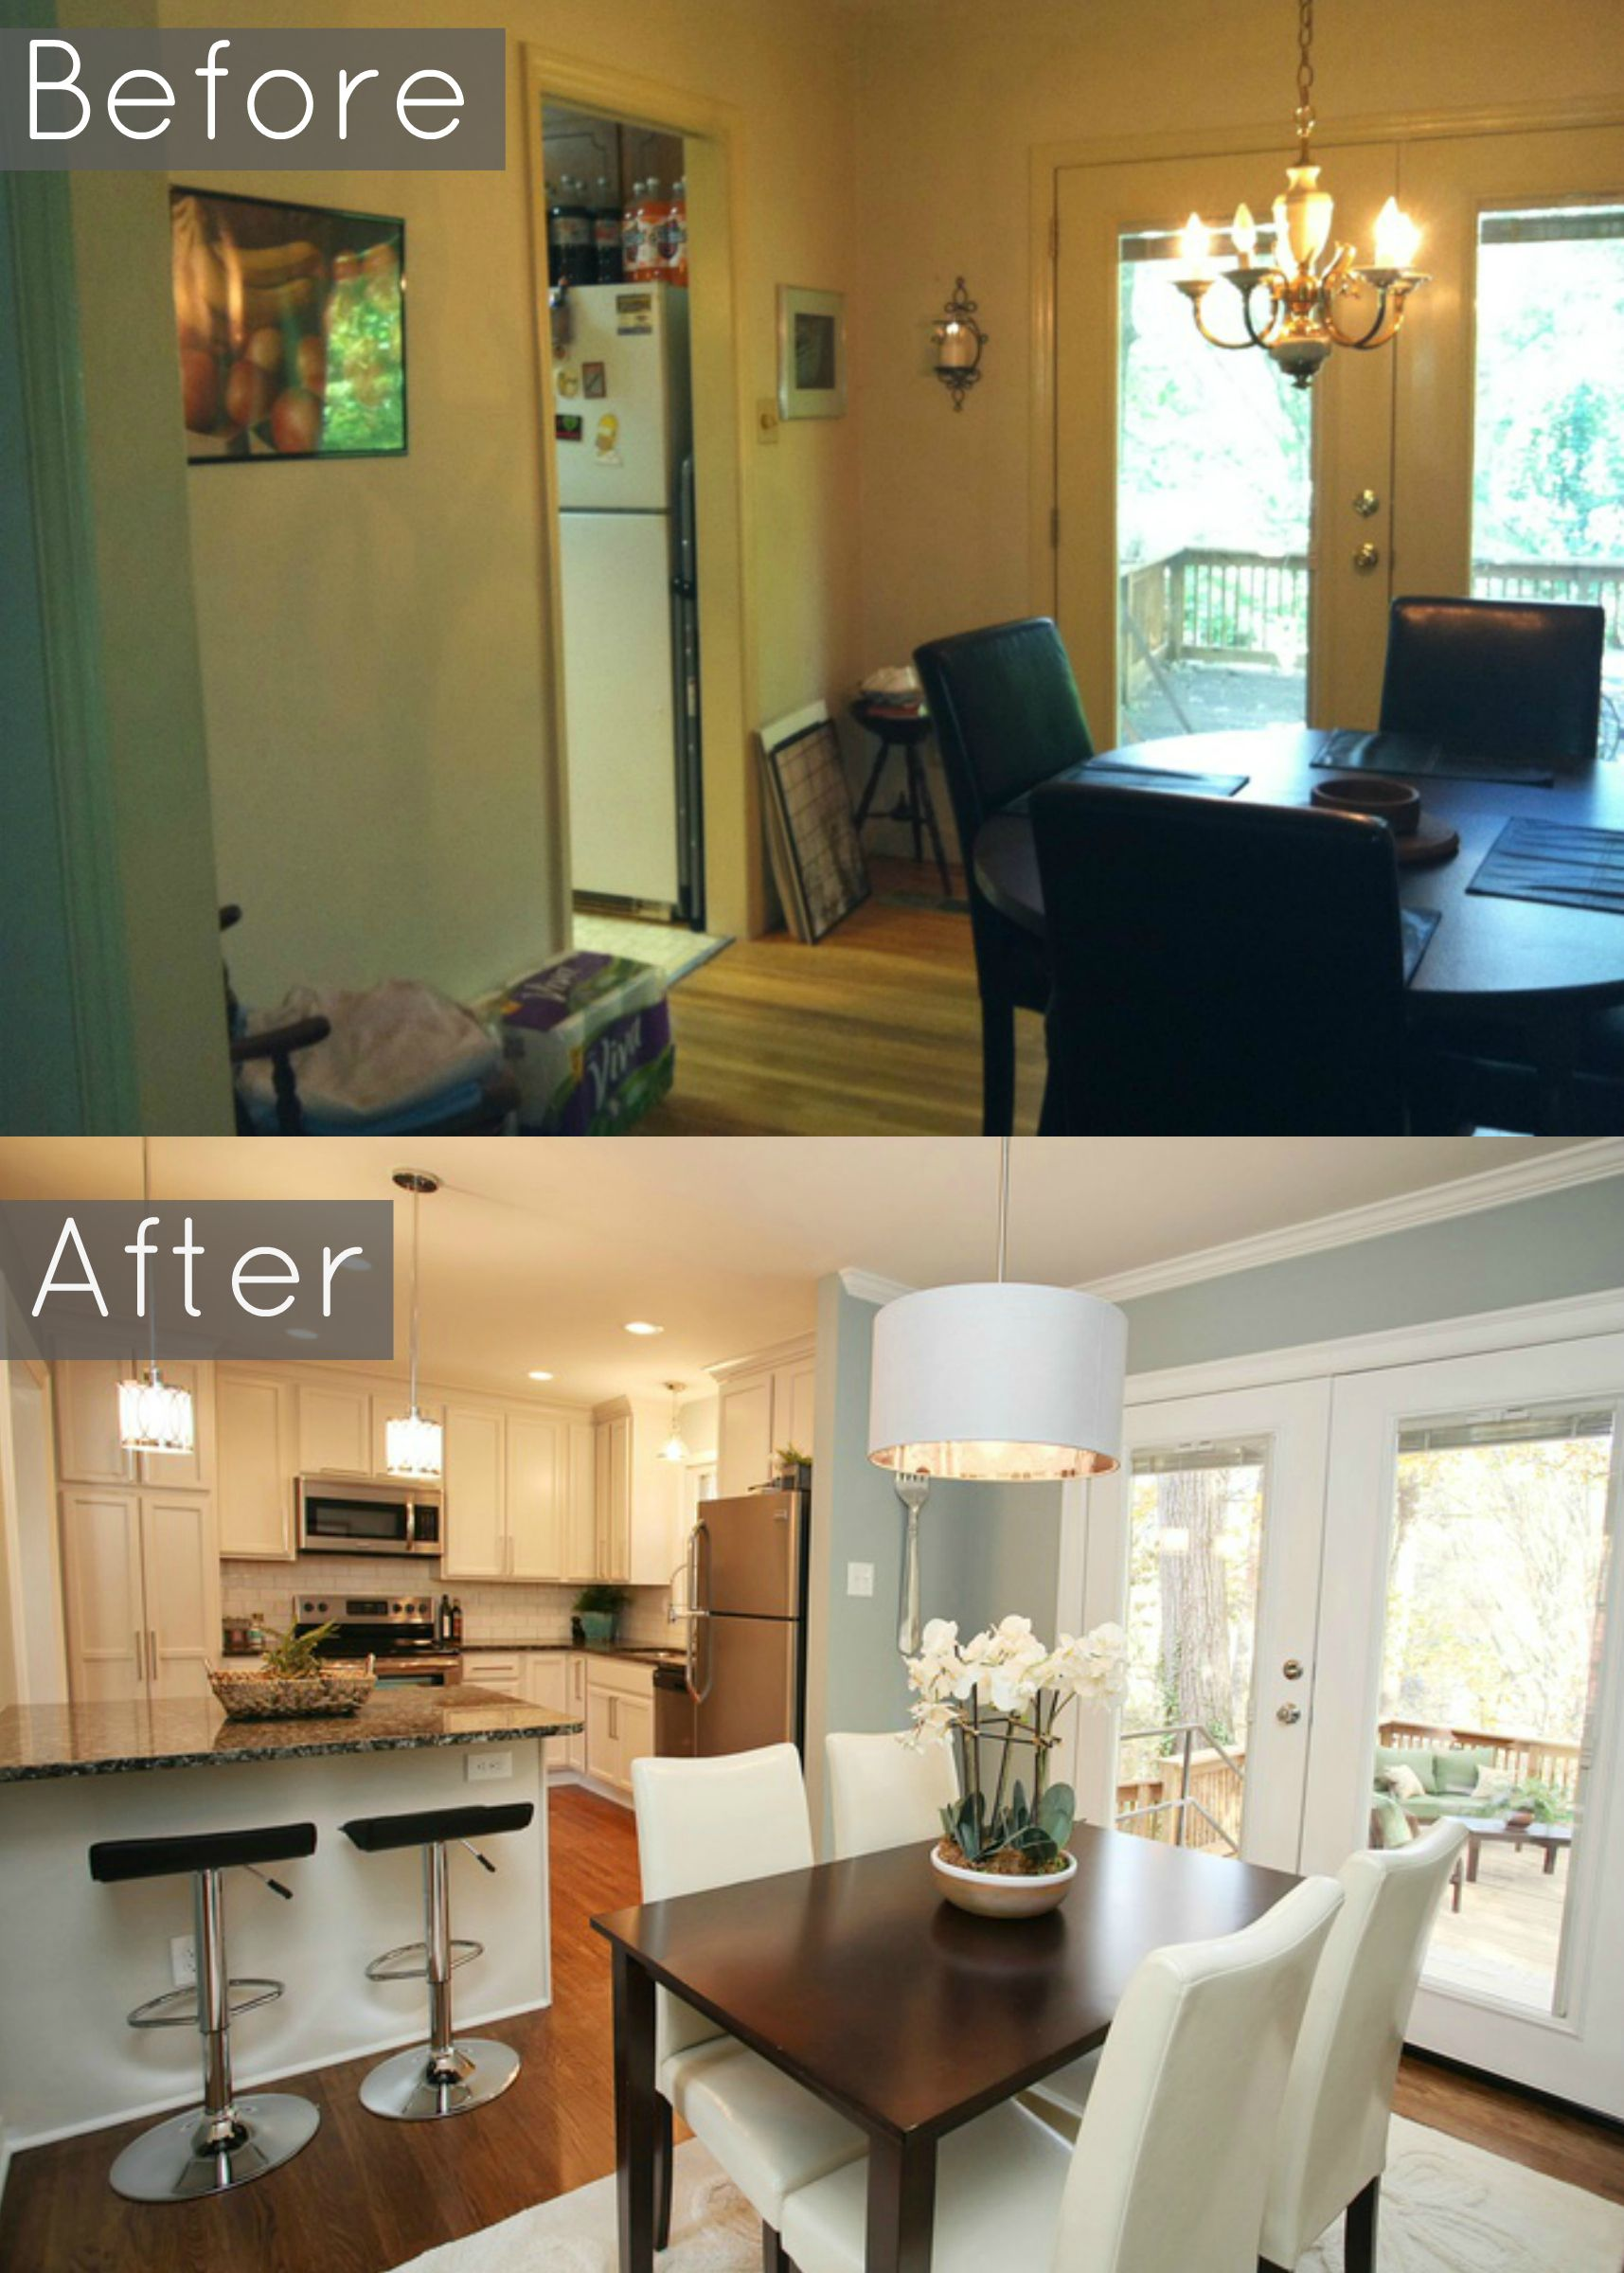 remodeling open kitchen living room table and bench opening walls between rooms transforms spaces